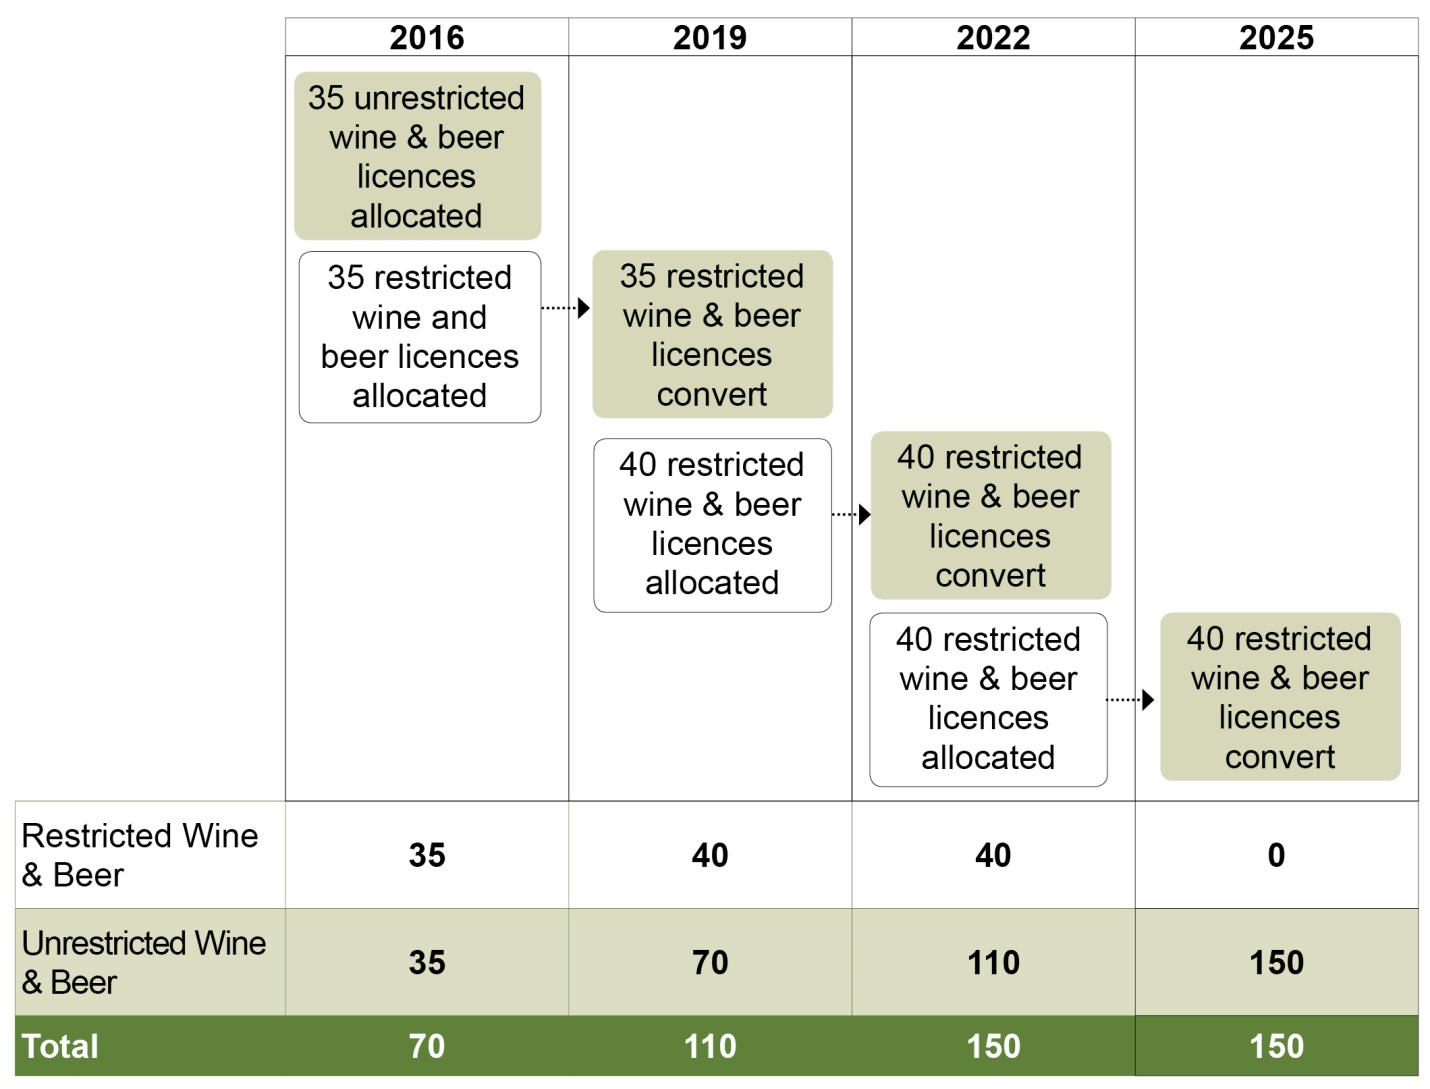 4e461903c411 The image depicts a chart showing the potential timeline for the allocation  of 150 universal wine